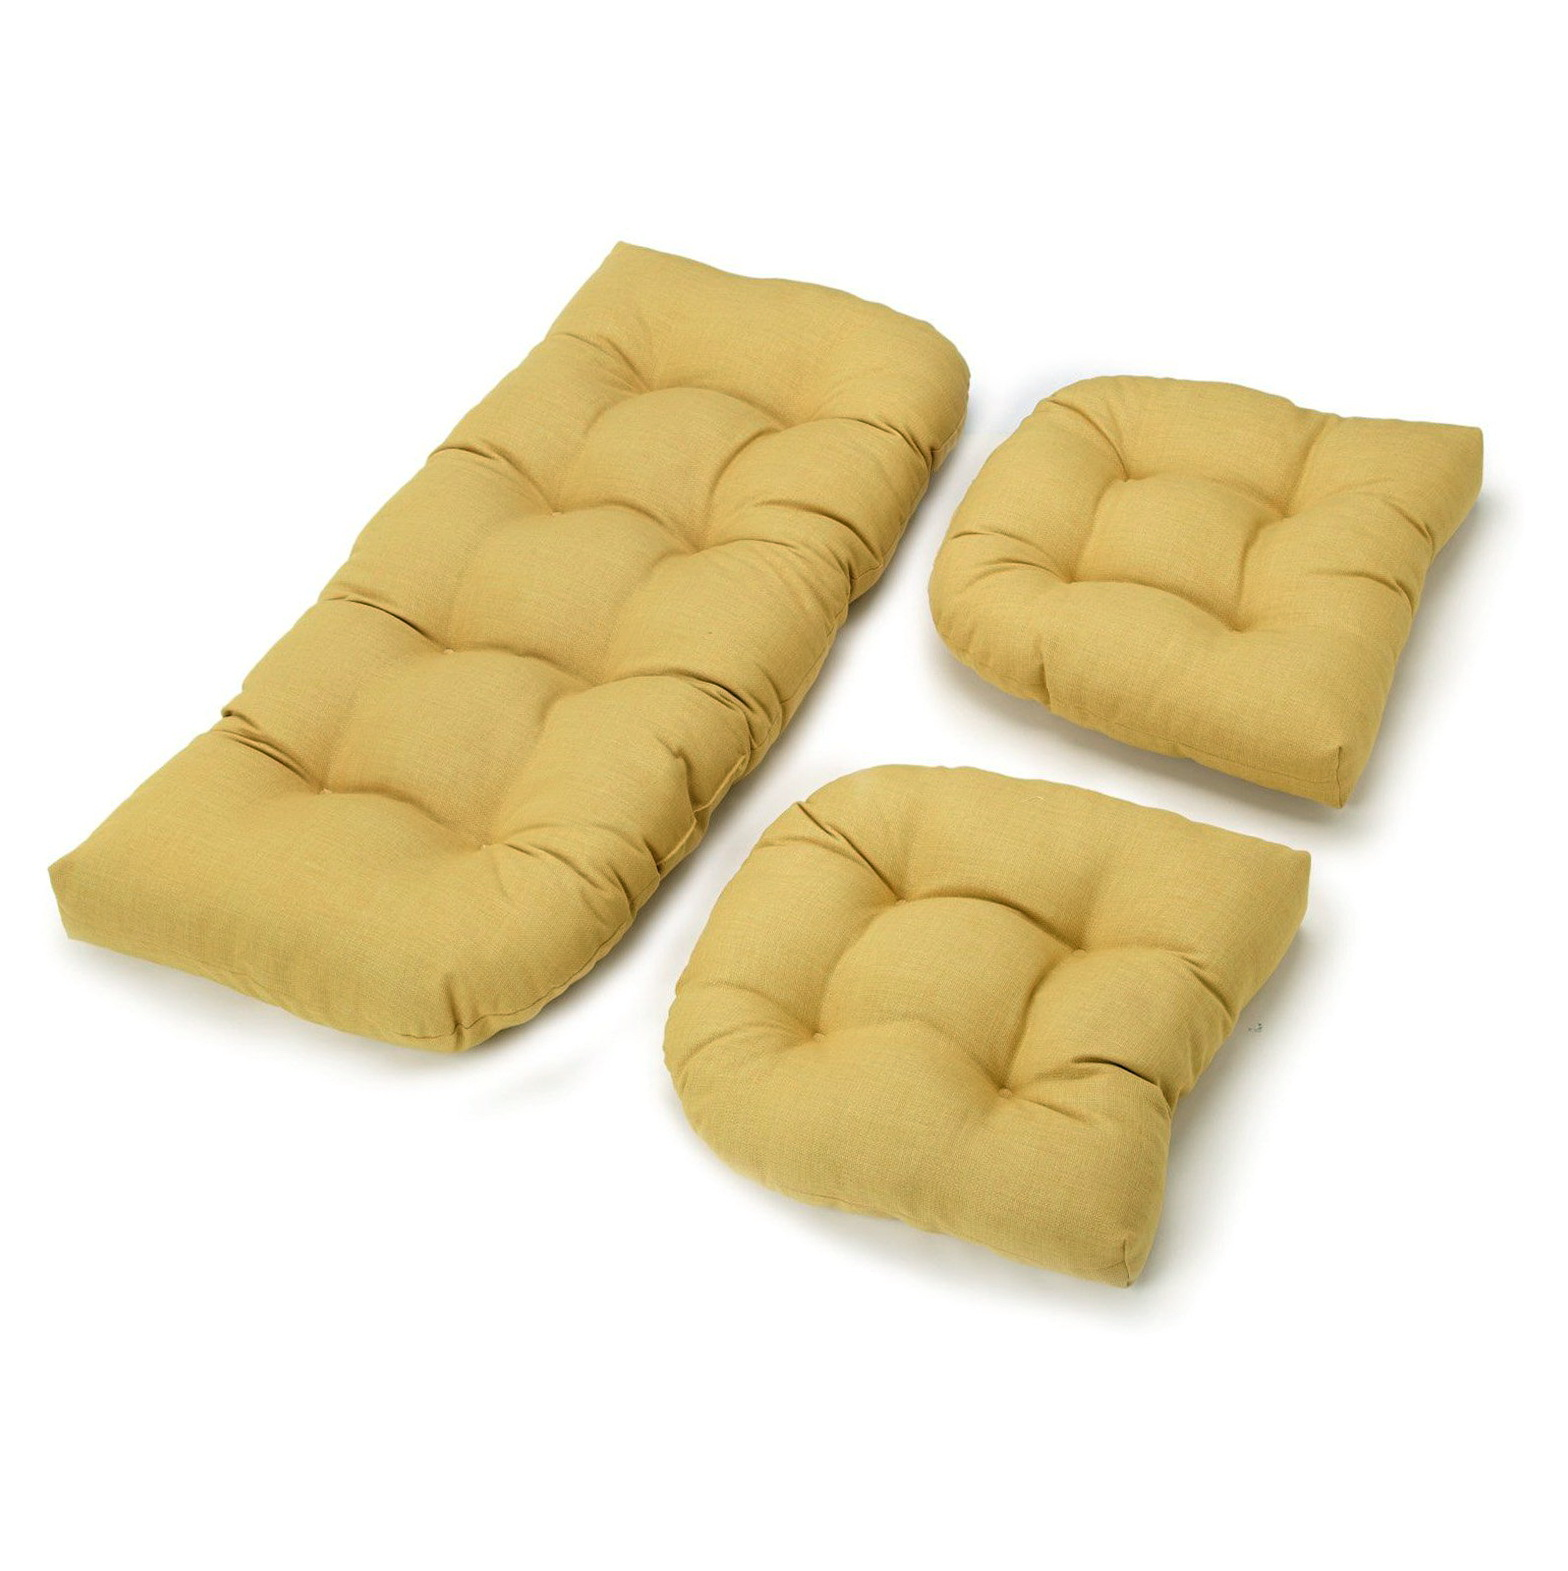 Outdoor Wicker Cushions Replacement